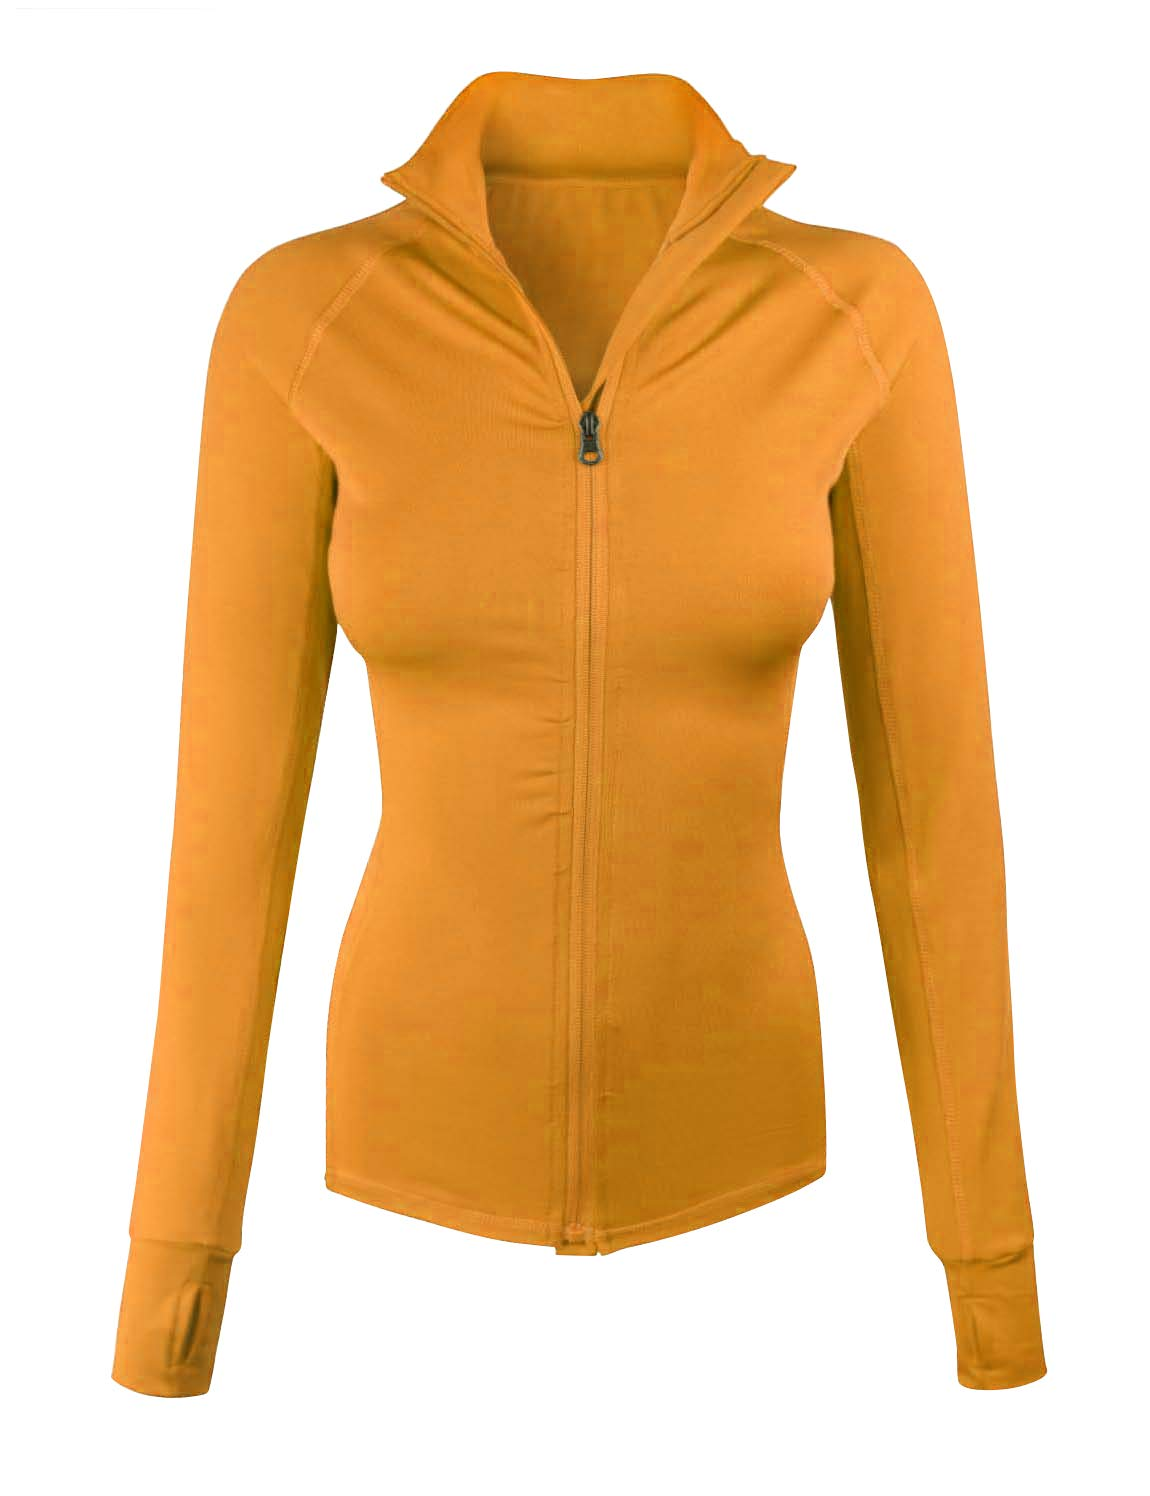 makeitmint Women's Comfy Zip Up Stretchy Work Out Track Jacket w/Back Pocket Small YJZ0002-MUSTARD-SML